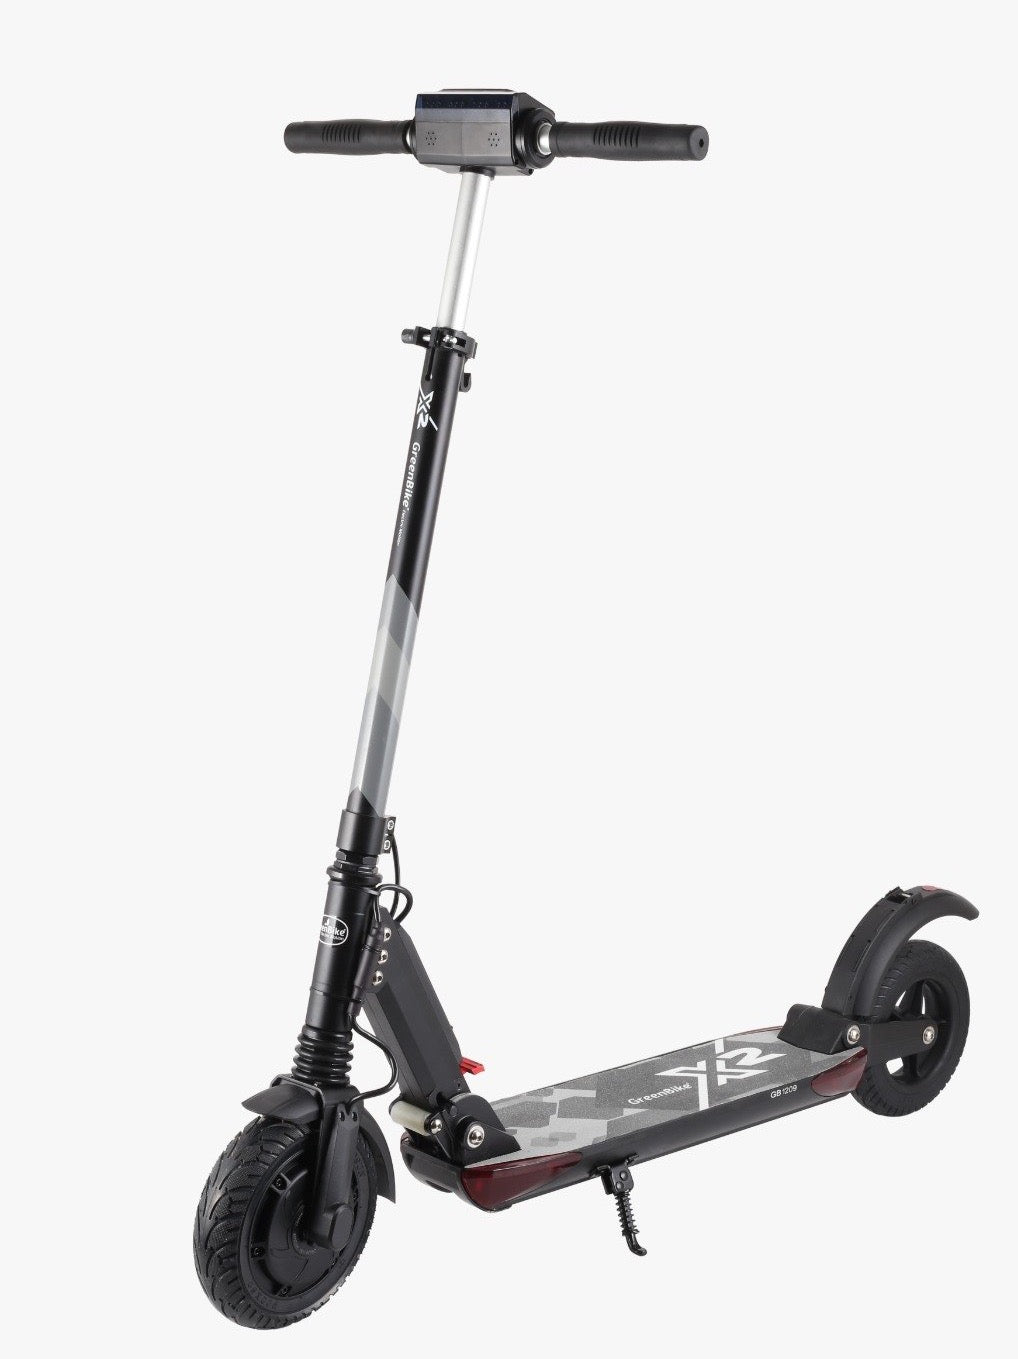 GreenBike Electric Motion - X2 Electric Scooter 36V 350W